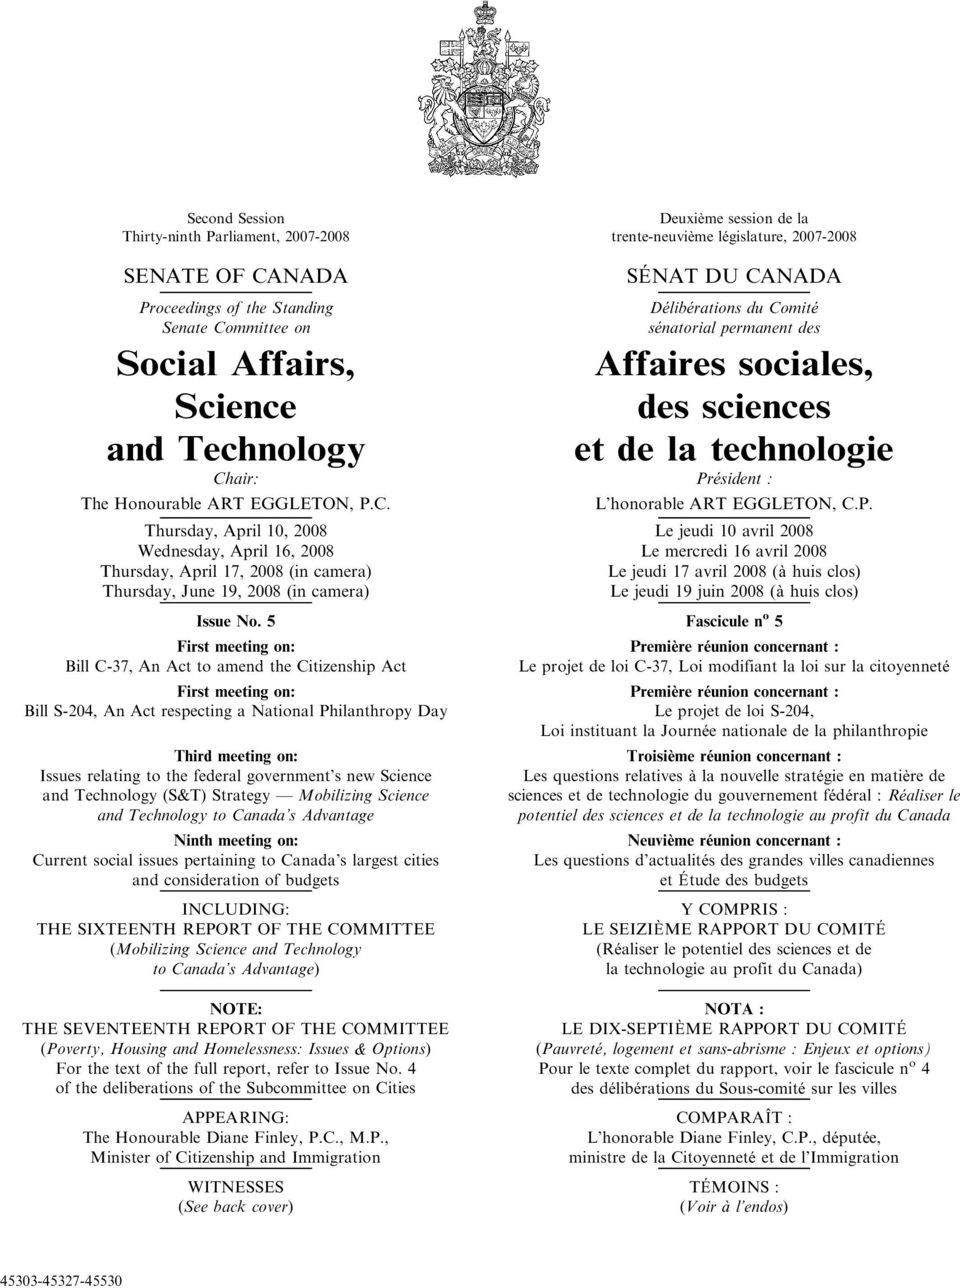 government s new Science and Technology (S&T) Strategy Mobilizing Science and Technology to Canada s Advantage Ninth meeting on: Current social issues pertaining to Canada s largest cities and